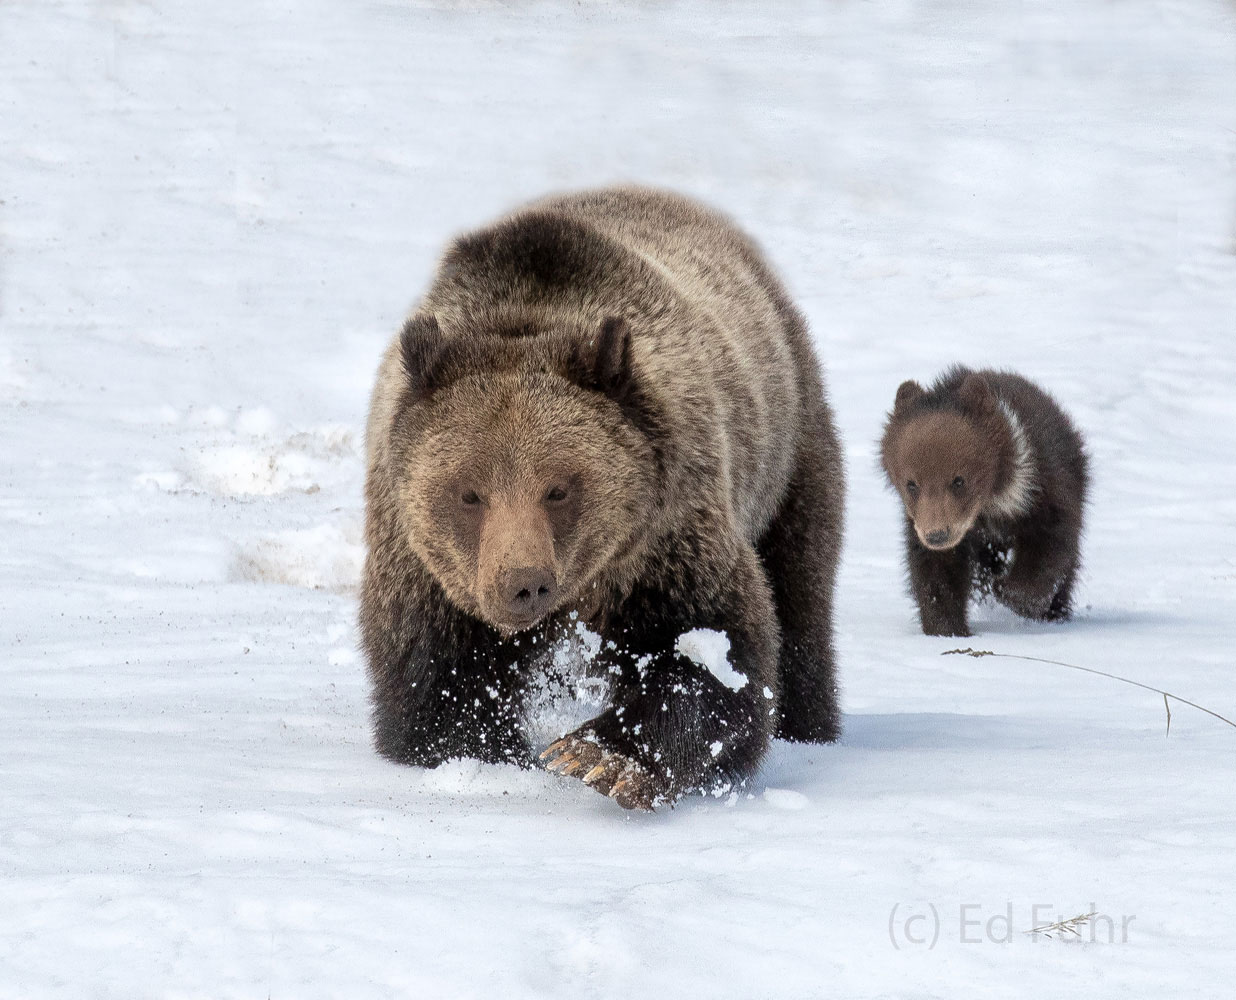 With immense claws and power, grizzly Pepper plows through the snow, as her cub Pepper rallies from behind.